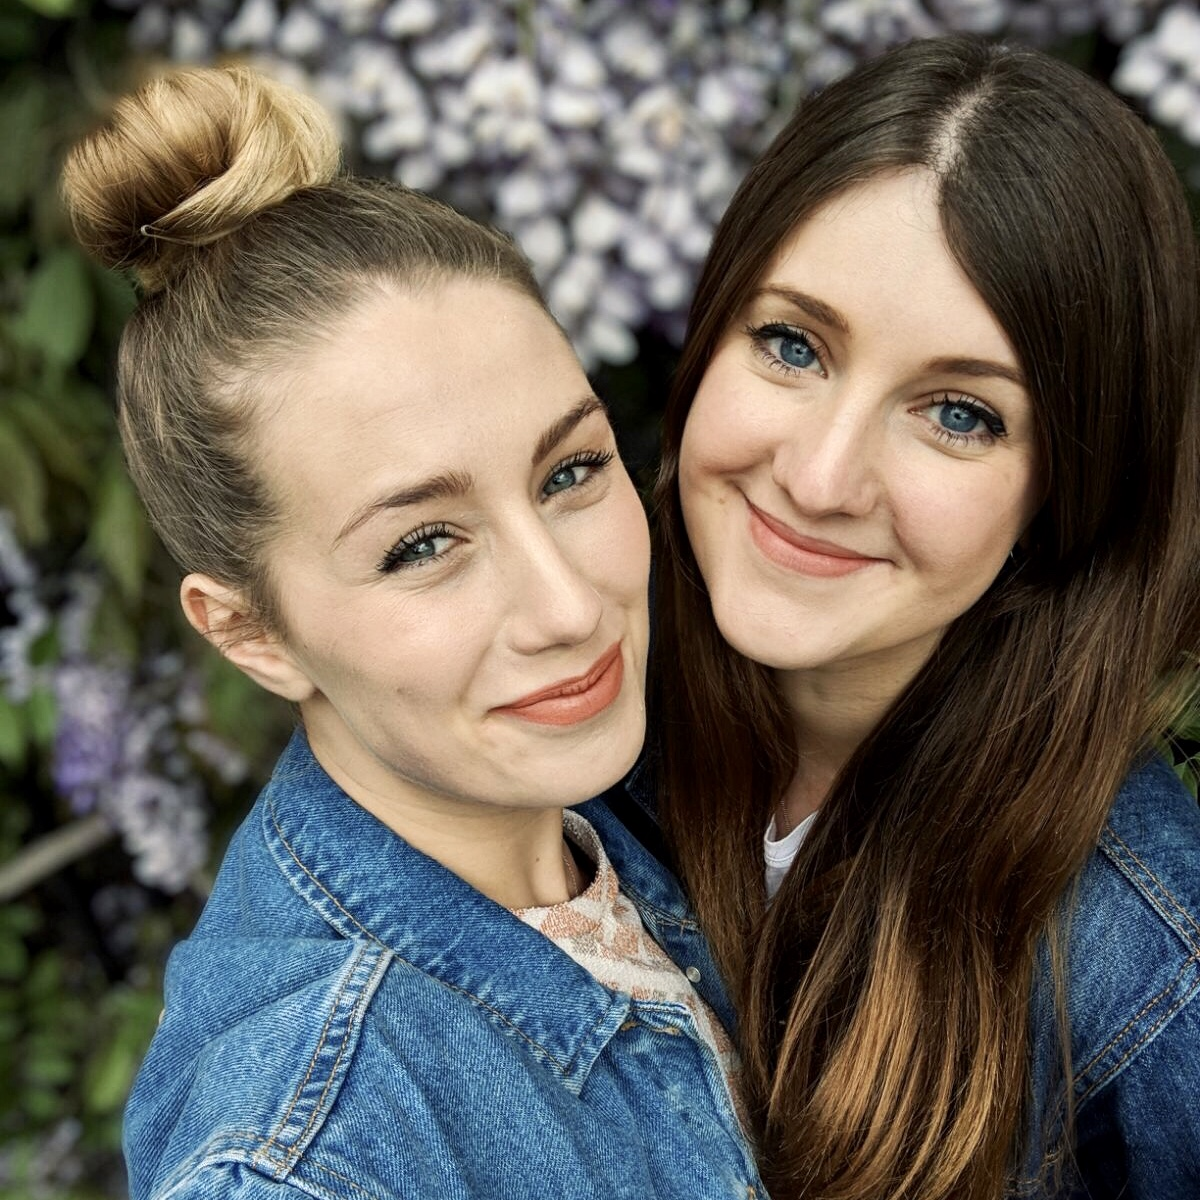 #68 Charlotte & Loriley - Watch out, these girls are fire. Charlotte Prince and Loriley Sessions are a creative team at Leo Burnett London, who have been described as 'prolific doers', and aren't afraid to get their hands dirty. Every project they work on is prioritised to benefit people's lives and often breaks the rules of traditional advertising. They have dangerously hung out the boot of vans in the Alps whilst campaigning with SKODA for a female Tour de France (yes, we can't believe there isn't a women's Tour de France either), celebrated boobs of all shapes and sizes with their #Booberang campaign for Breast Cancer Care, created magazines, ran blogs and worked on everything from tweets to TV ads. Throw anything at these girls and they'll hit the ground running.Instagram: @lorileysesh@charlottelouiseprinceLoriley: http://europe.advertisingweek.com/speakers/?id=8060#0SYH5DmJiGQrPmd2.99Charlotte: http://europe.advertisingweek.com/speakers/?id=8059